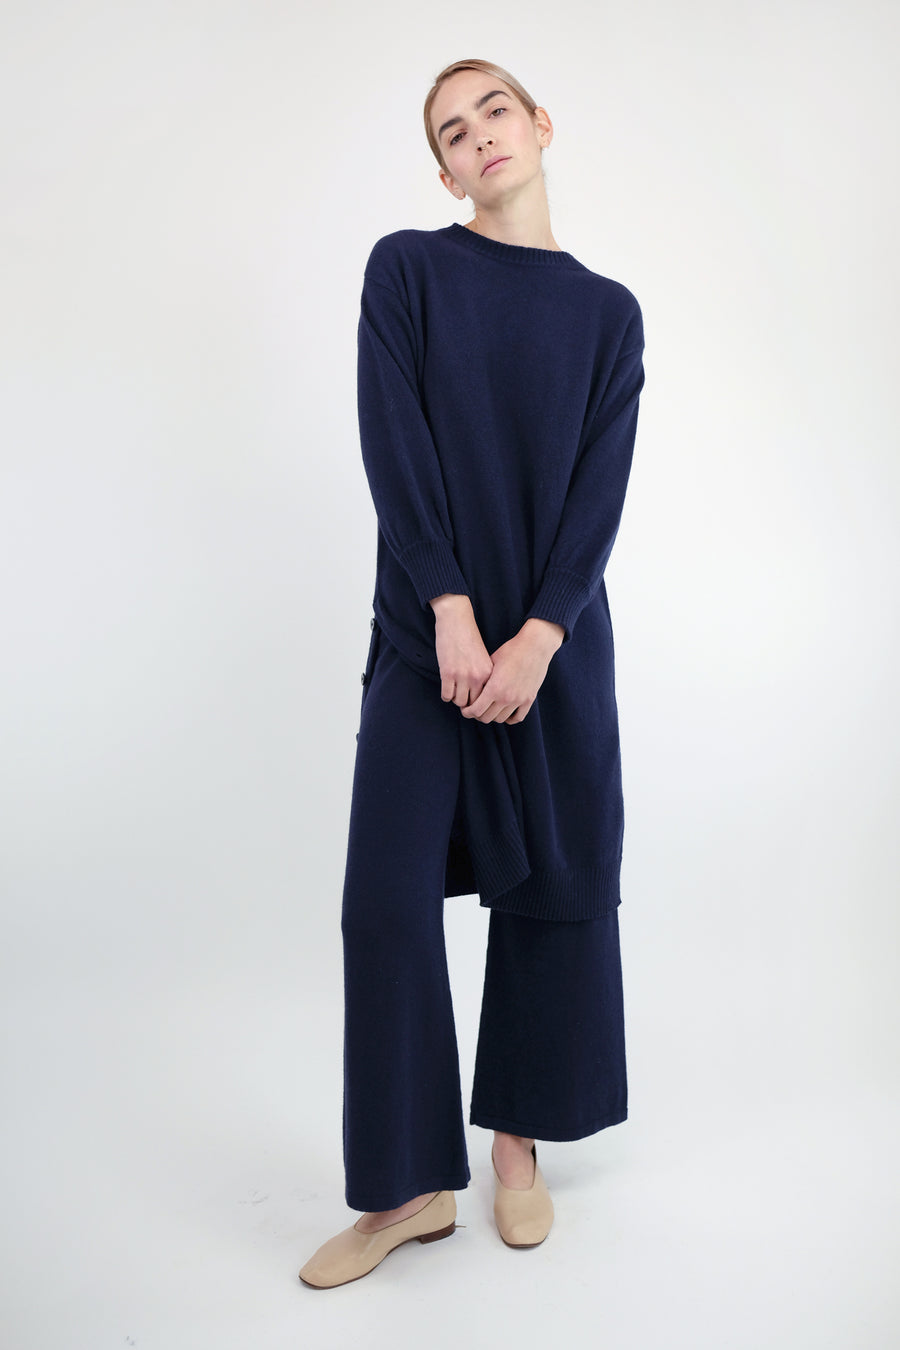 Mignight Blue Lou Sweater Dress